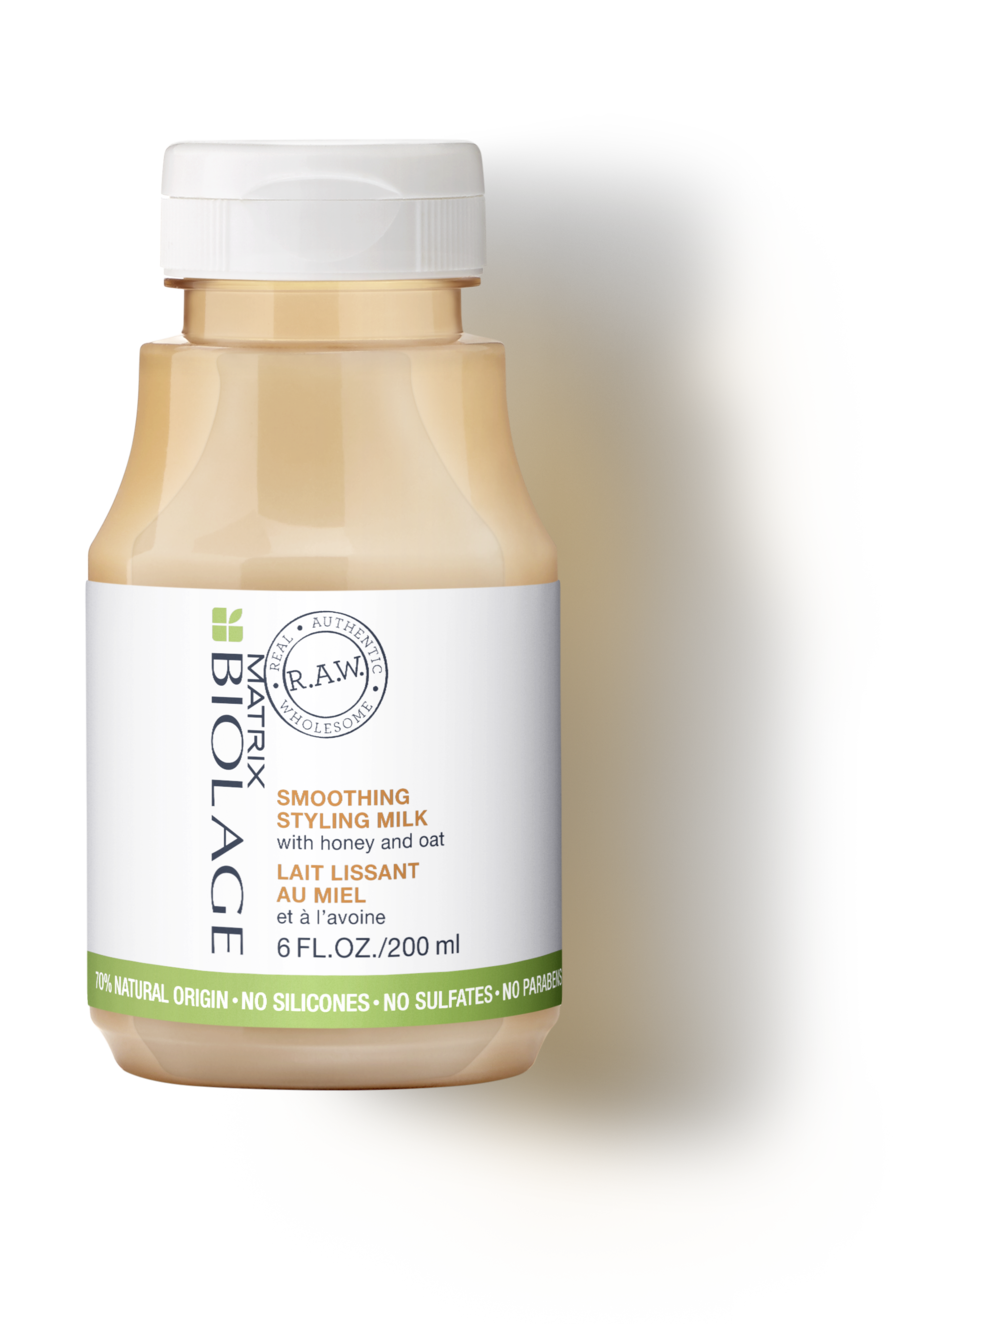 BIOLAGE_RAW_STYLING_Honey&Oat_USA.png